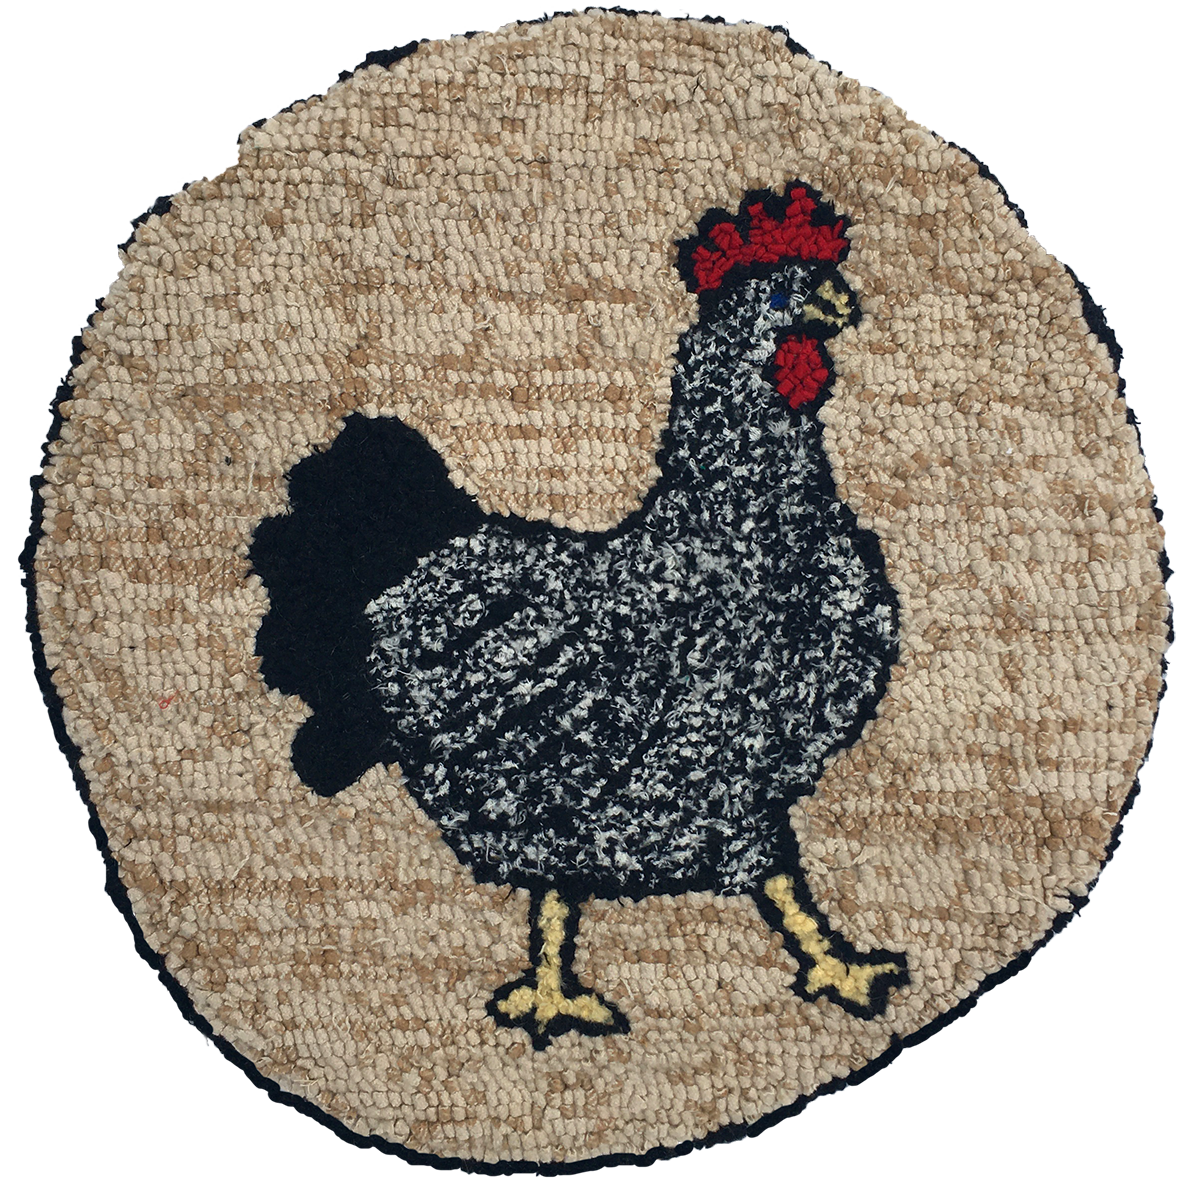 Chicken recycled wool hooked seat cover